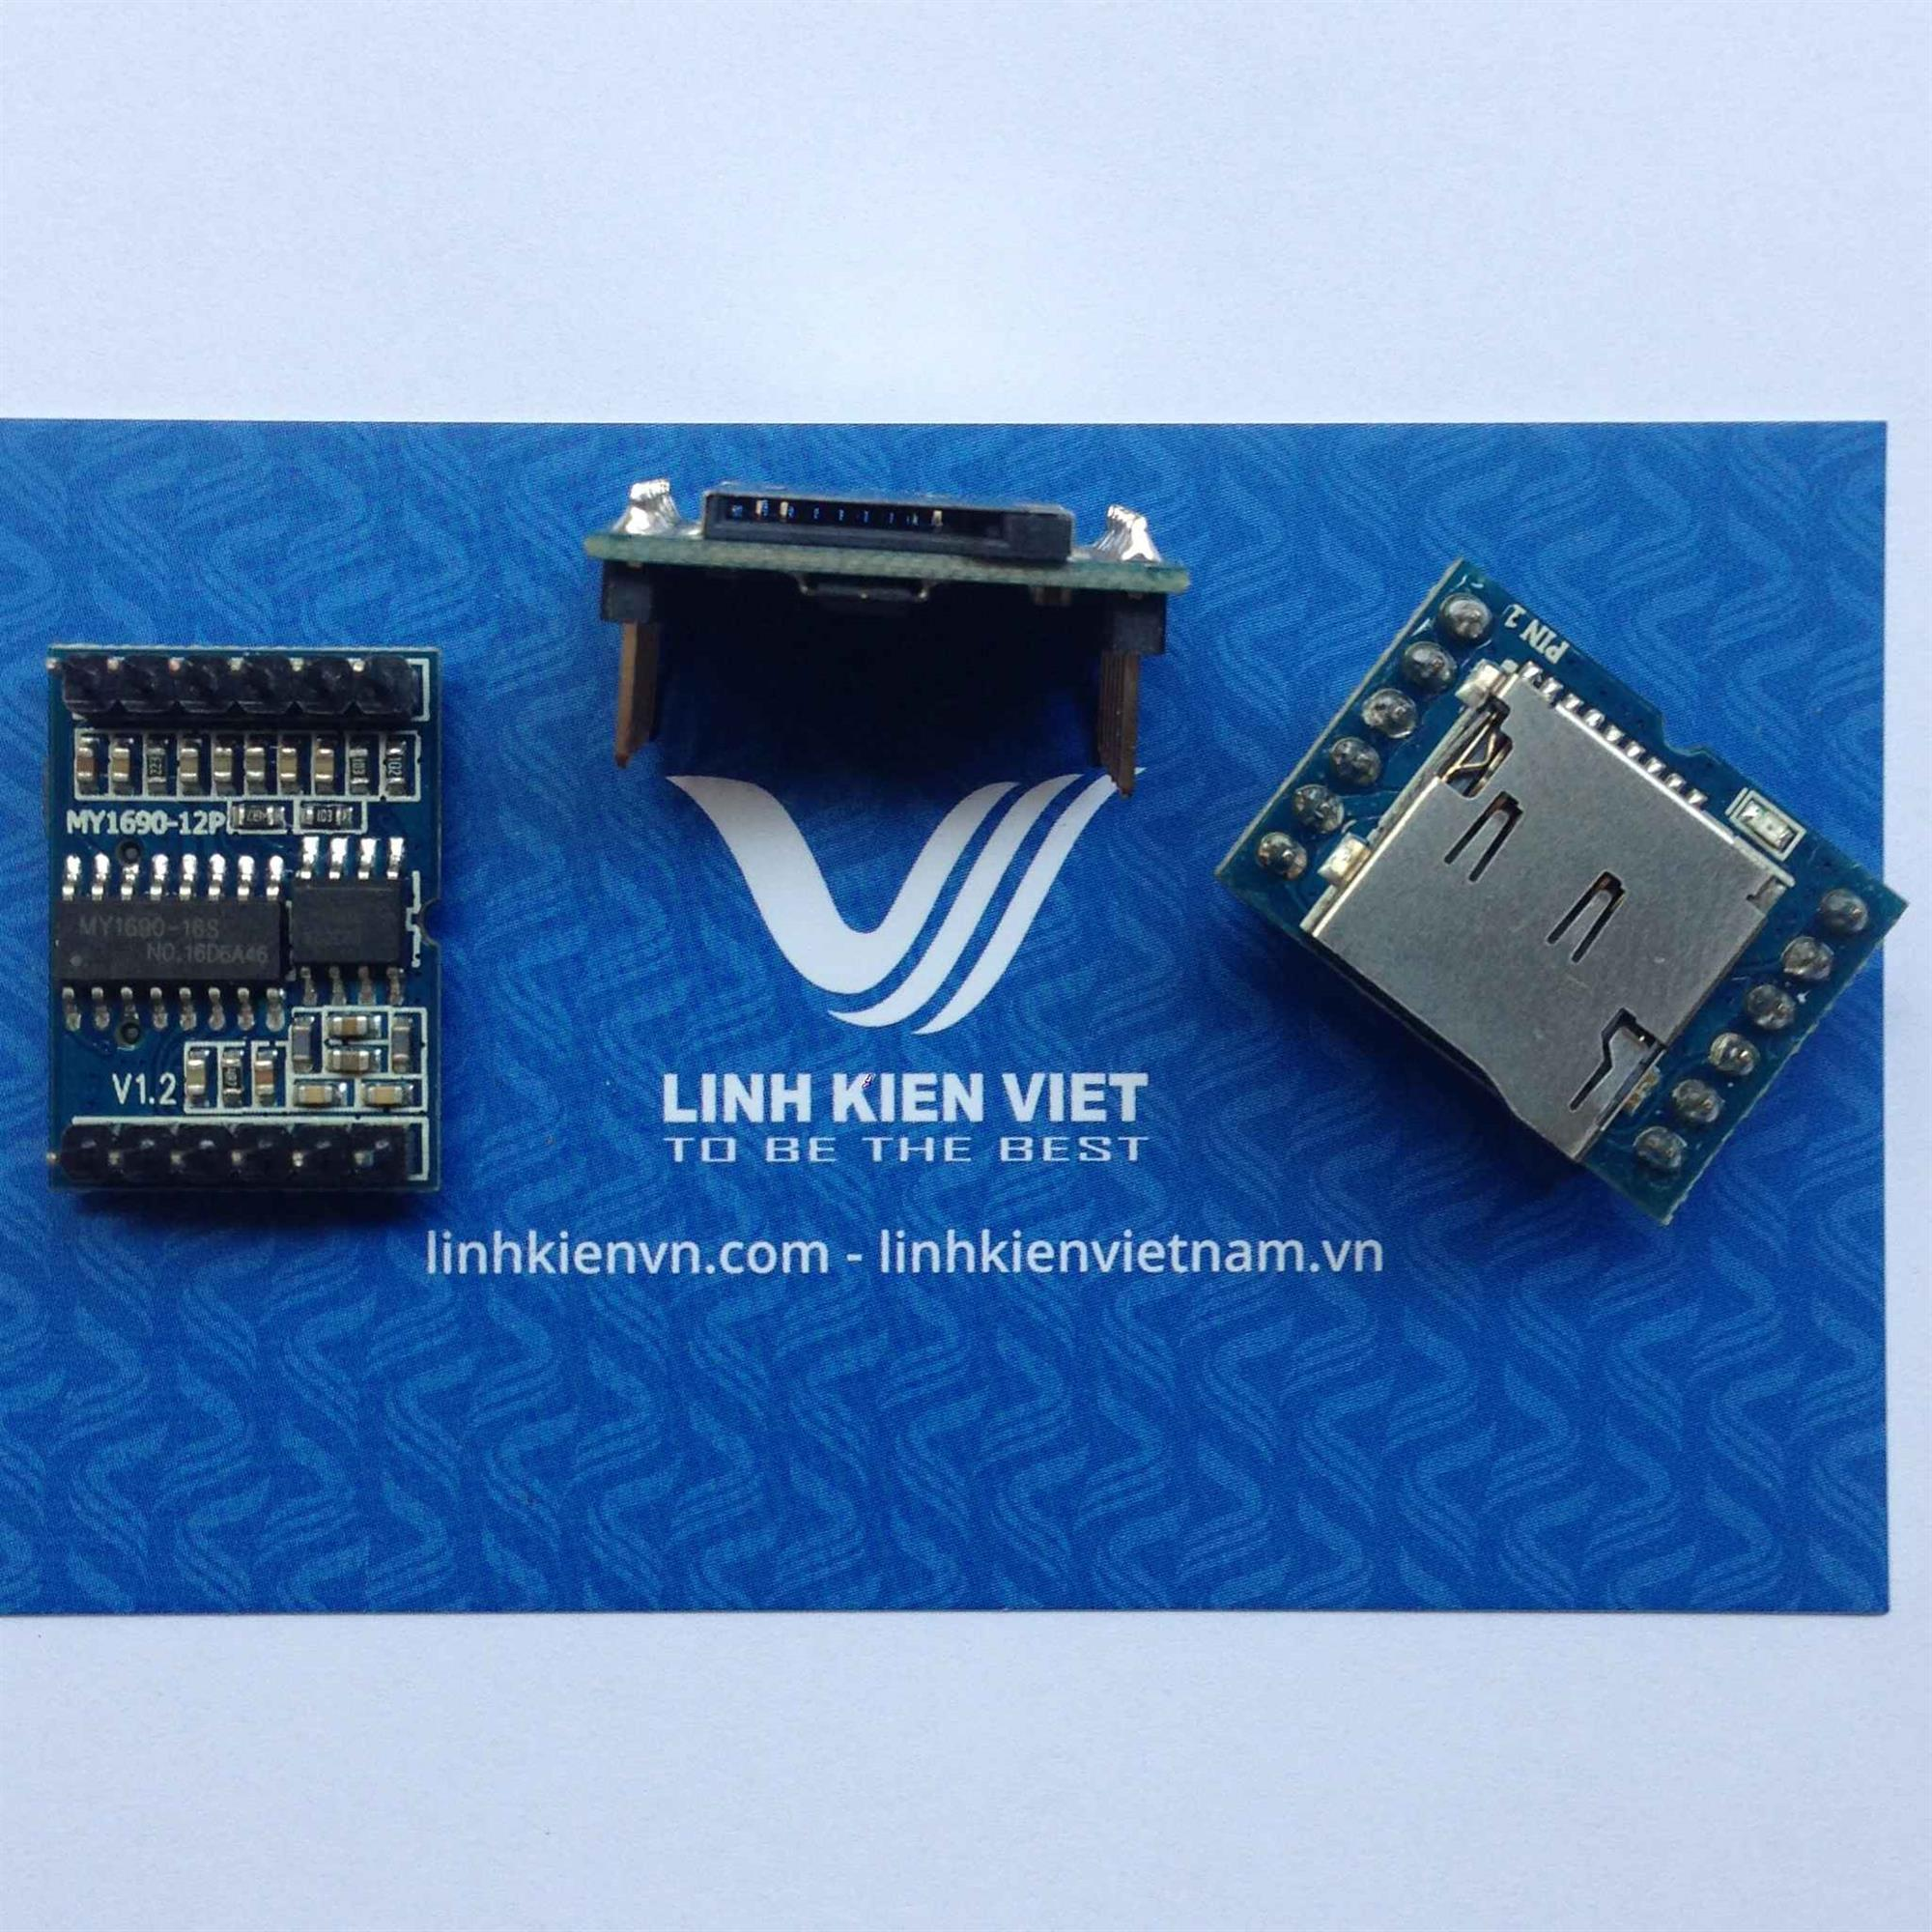 module nhạc MY1690-12P SD/ Module âm thanh MY1690-12P SD/ module USB FLASH SD - i1H6